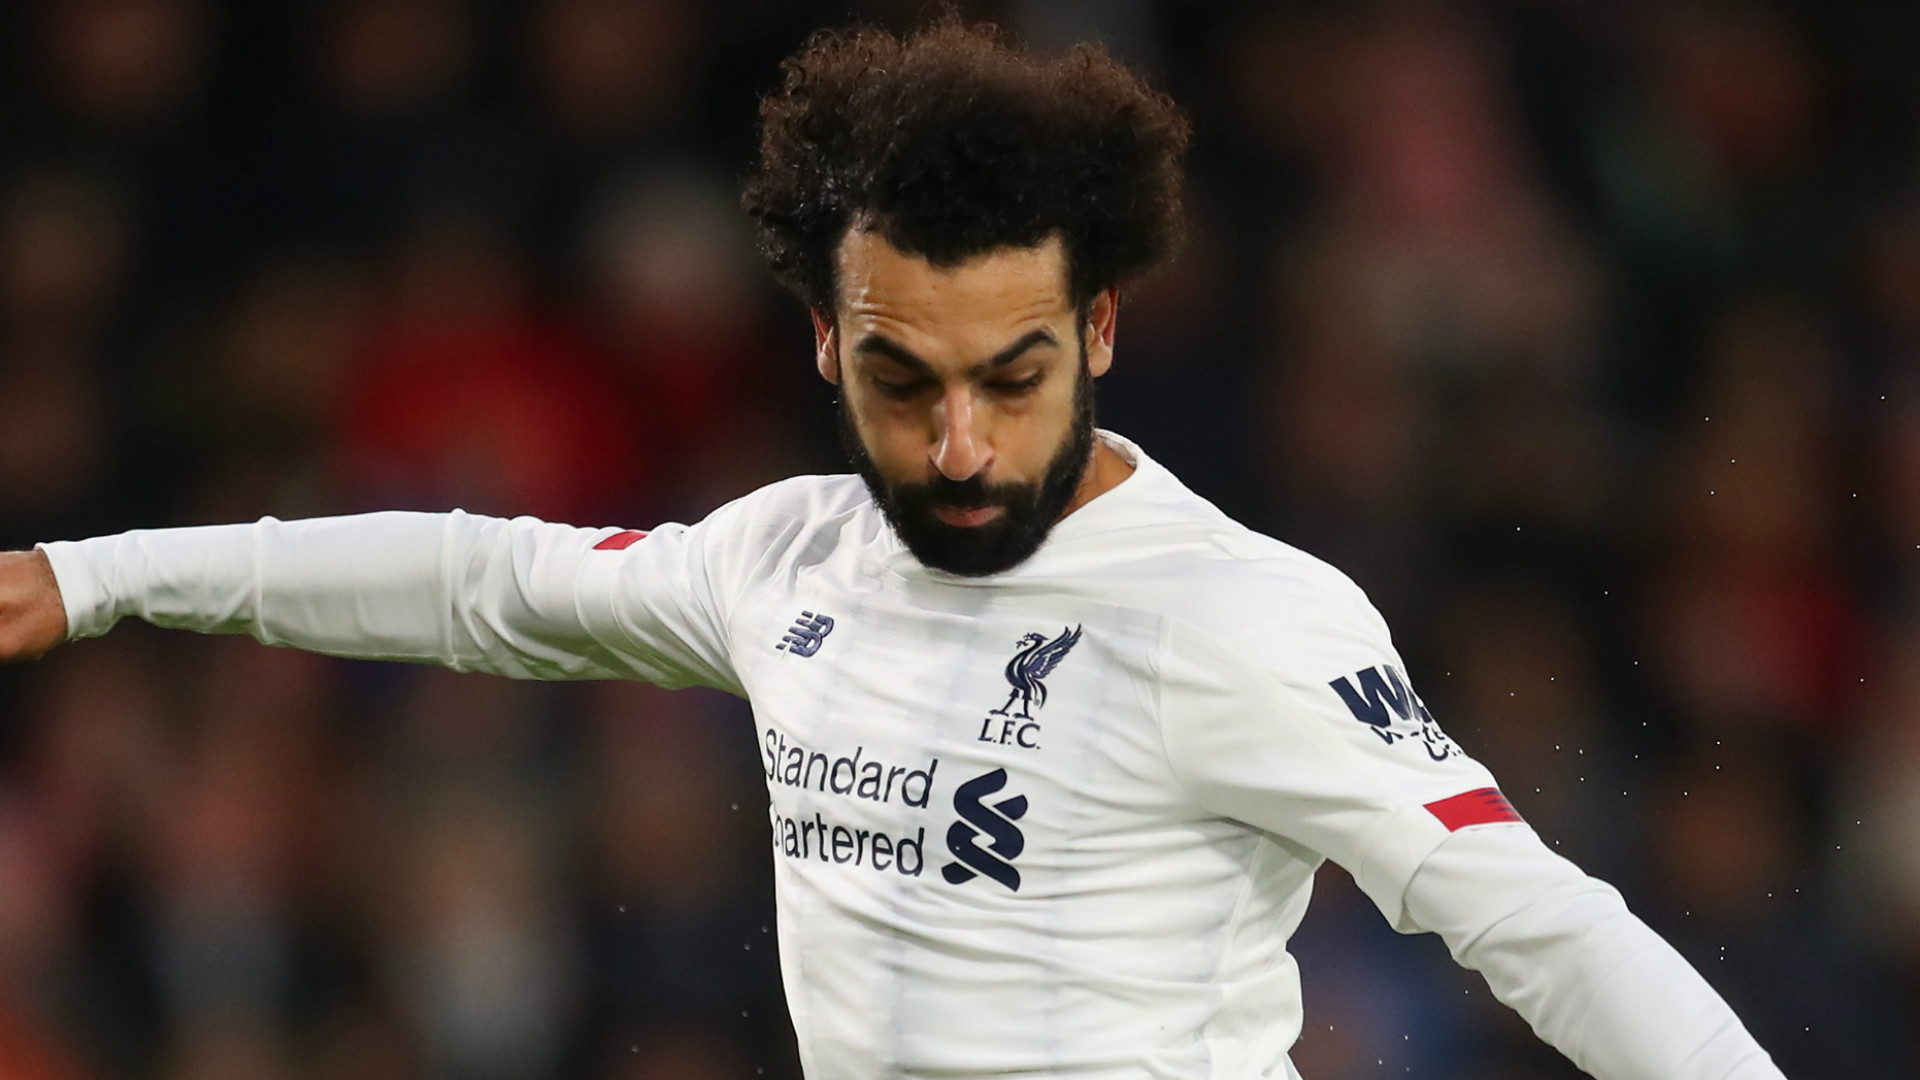 'Salah's future is at Liverpool' - Reds talisman tipped to snub Real Madrid & Barcelona interest